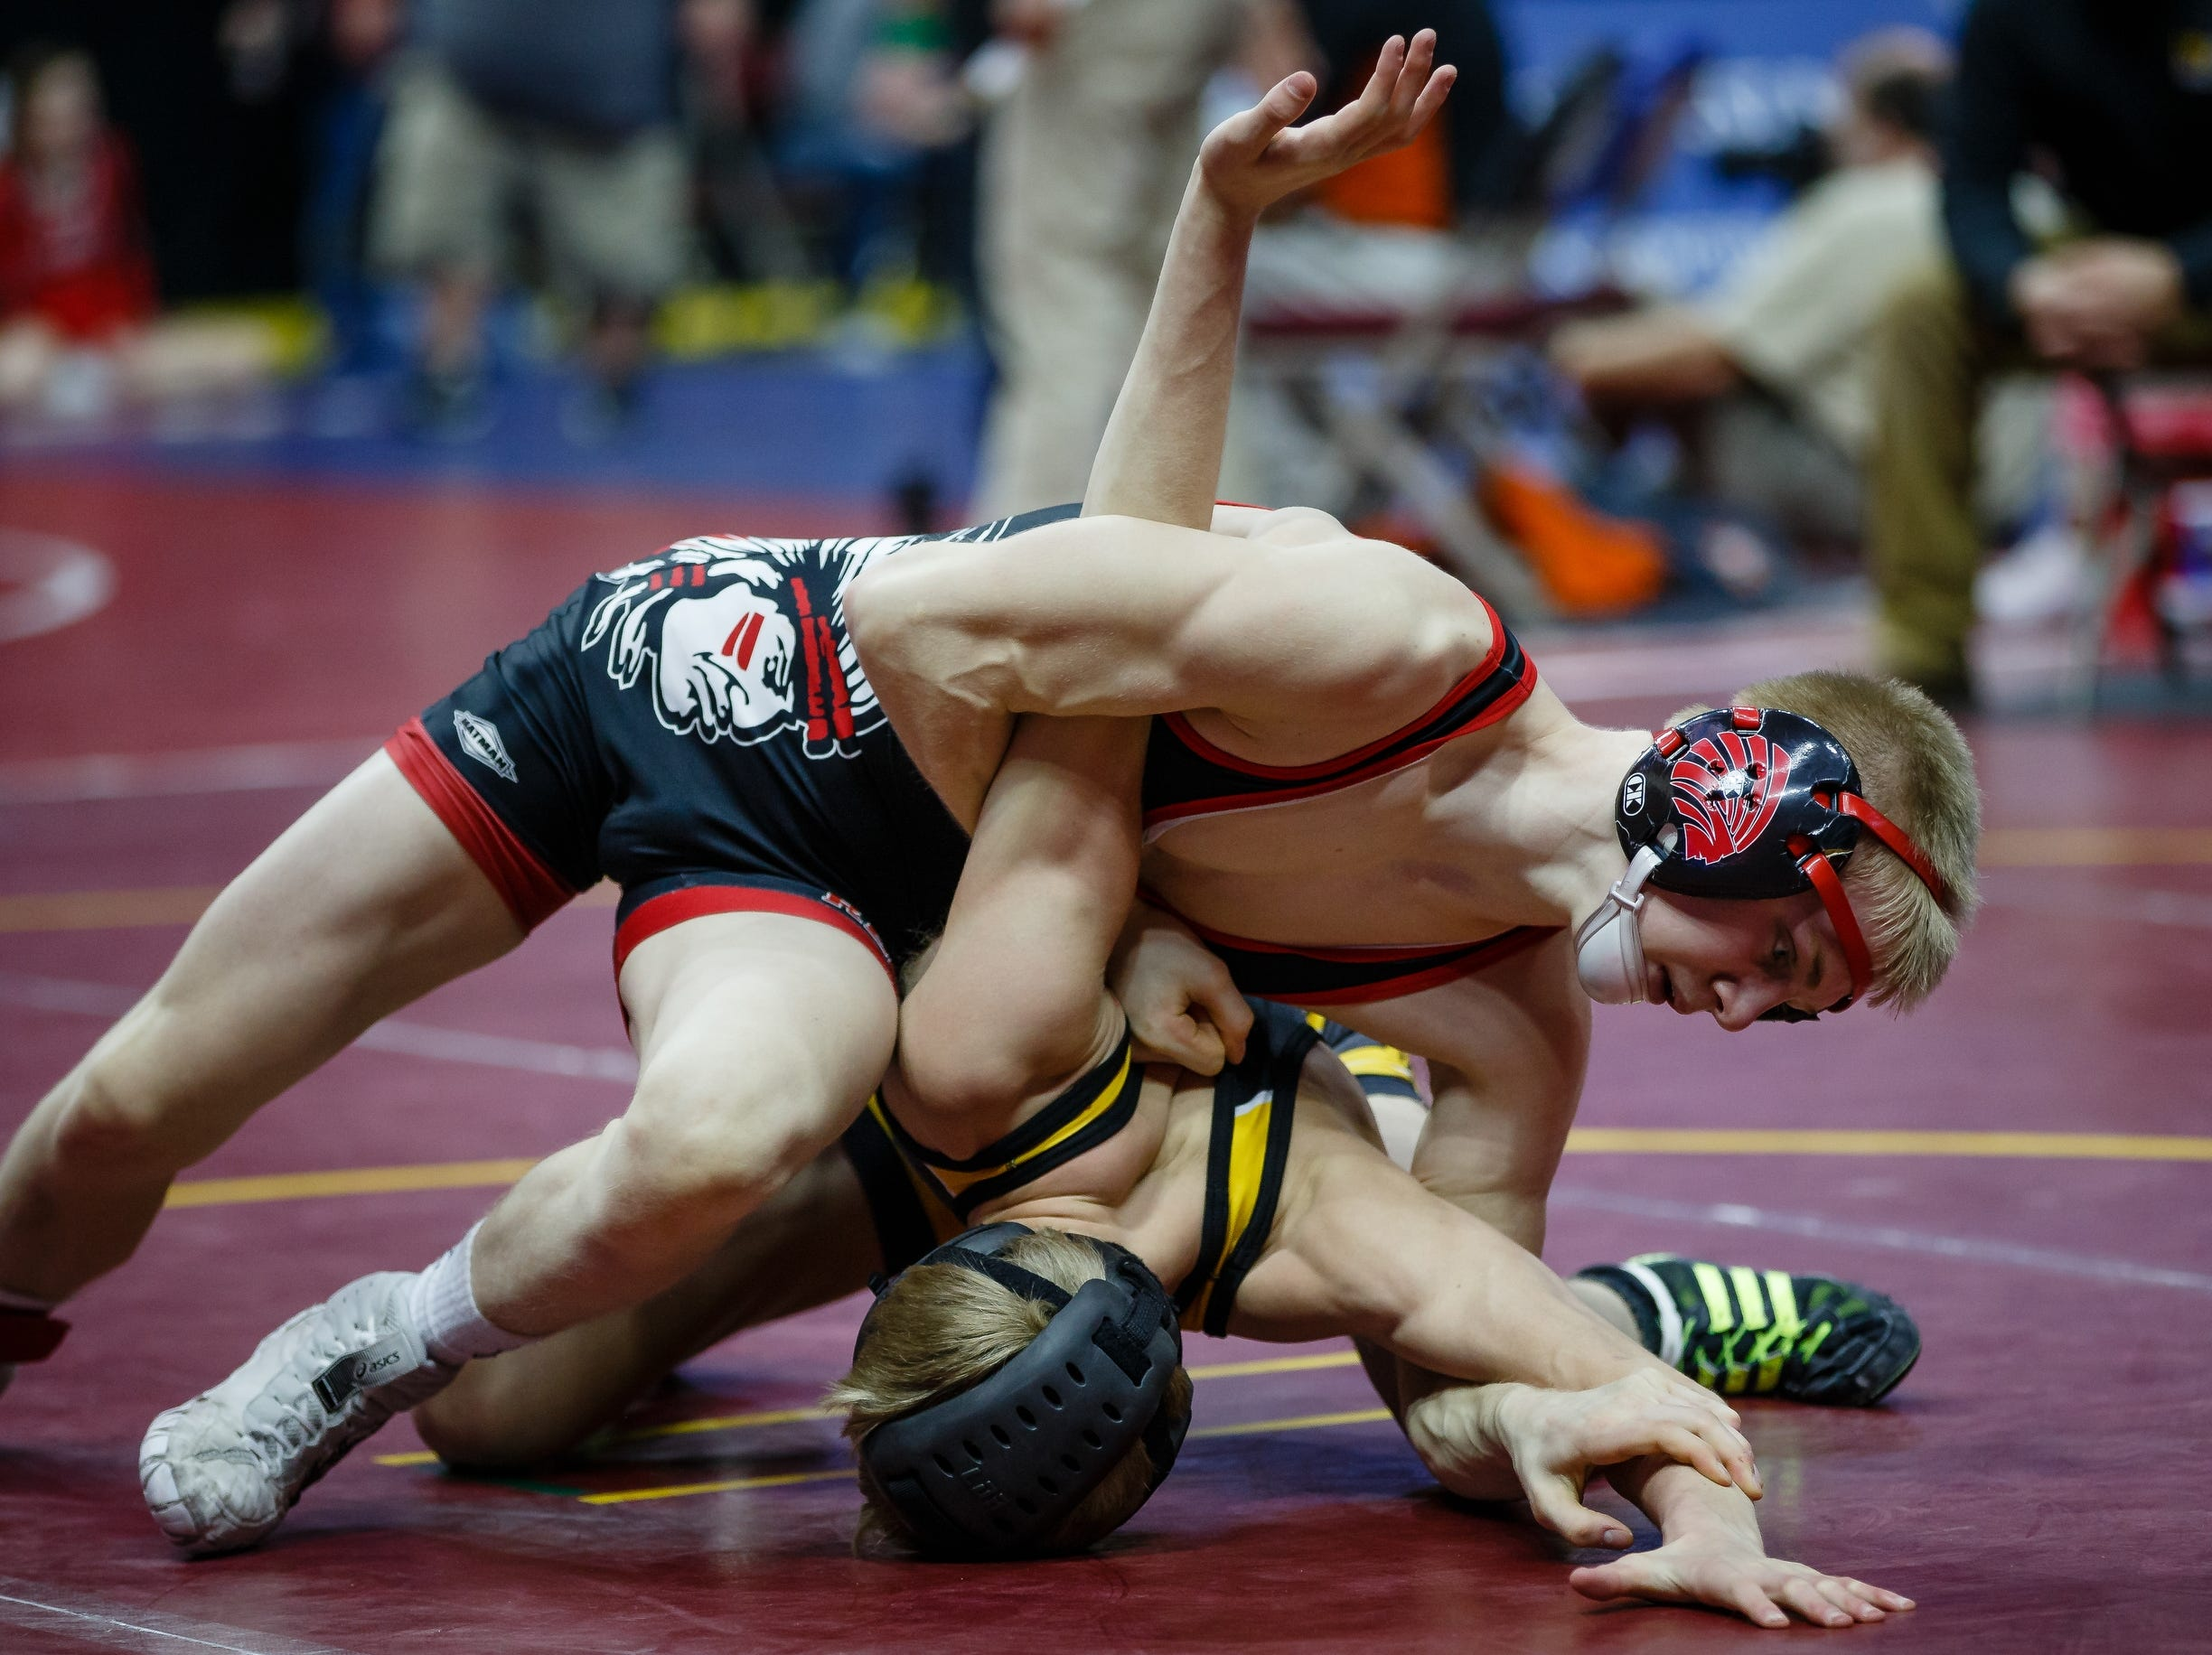 Matthew Lewis of Centerville wrestles Cole Whitehead of Center Point-Urbana during their class 2A, 113-pound state championship semifinal match on Friday. Lewis advances to the finals.